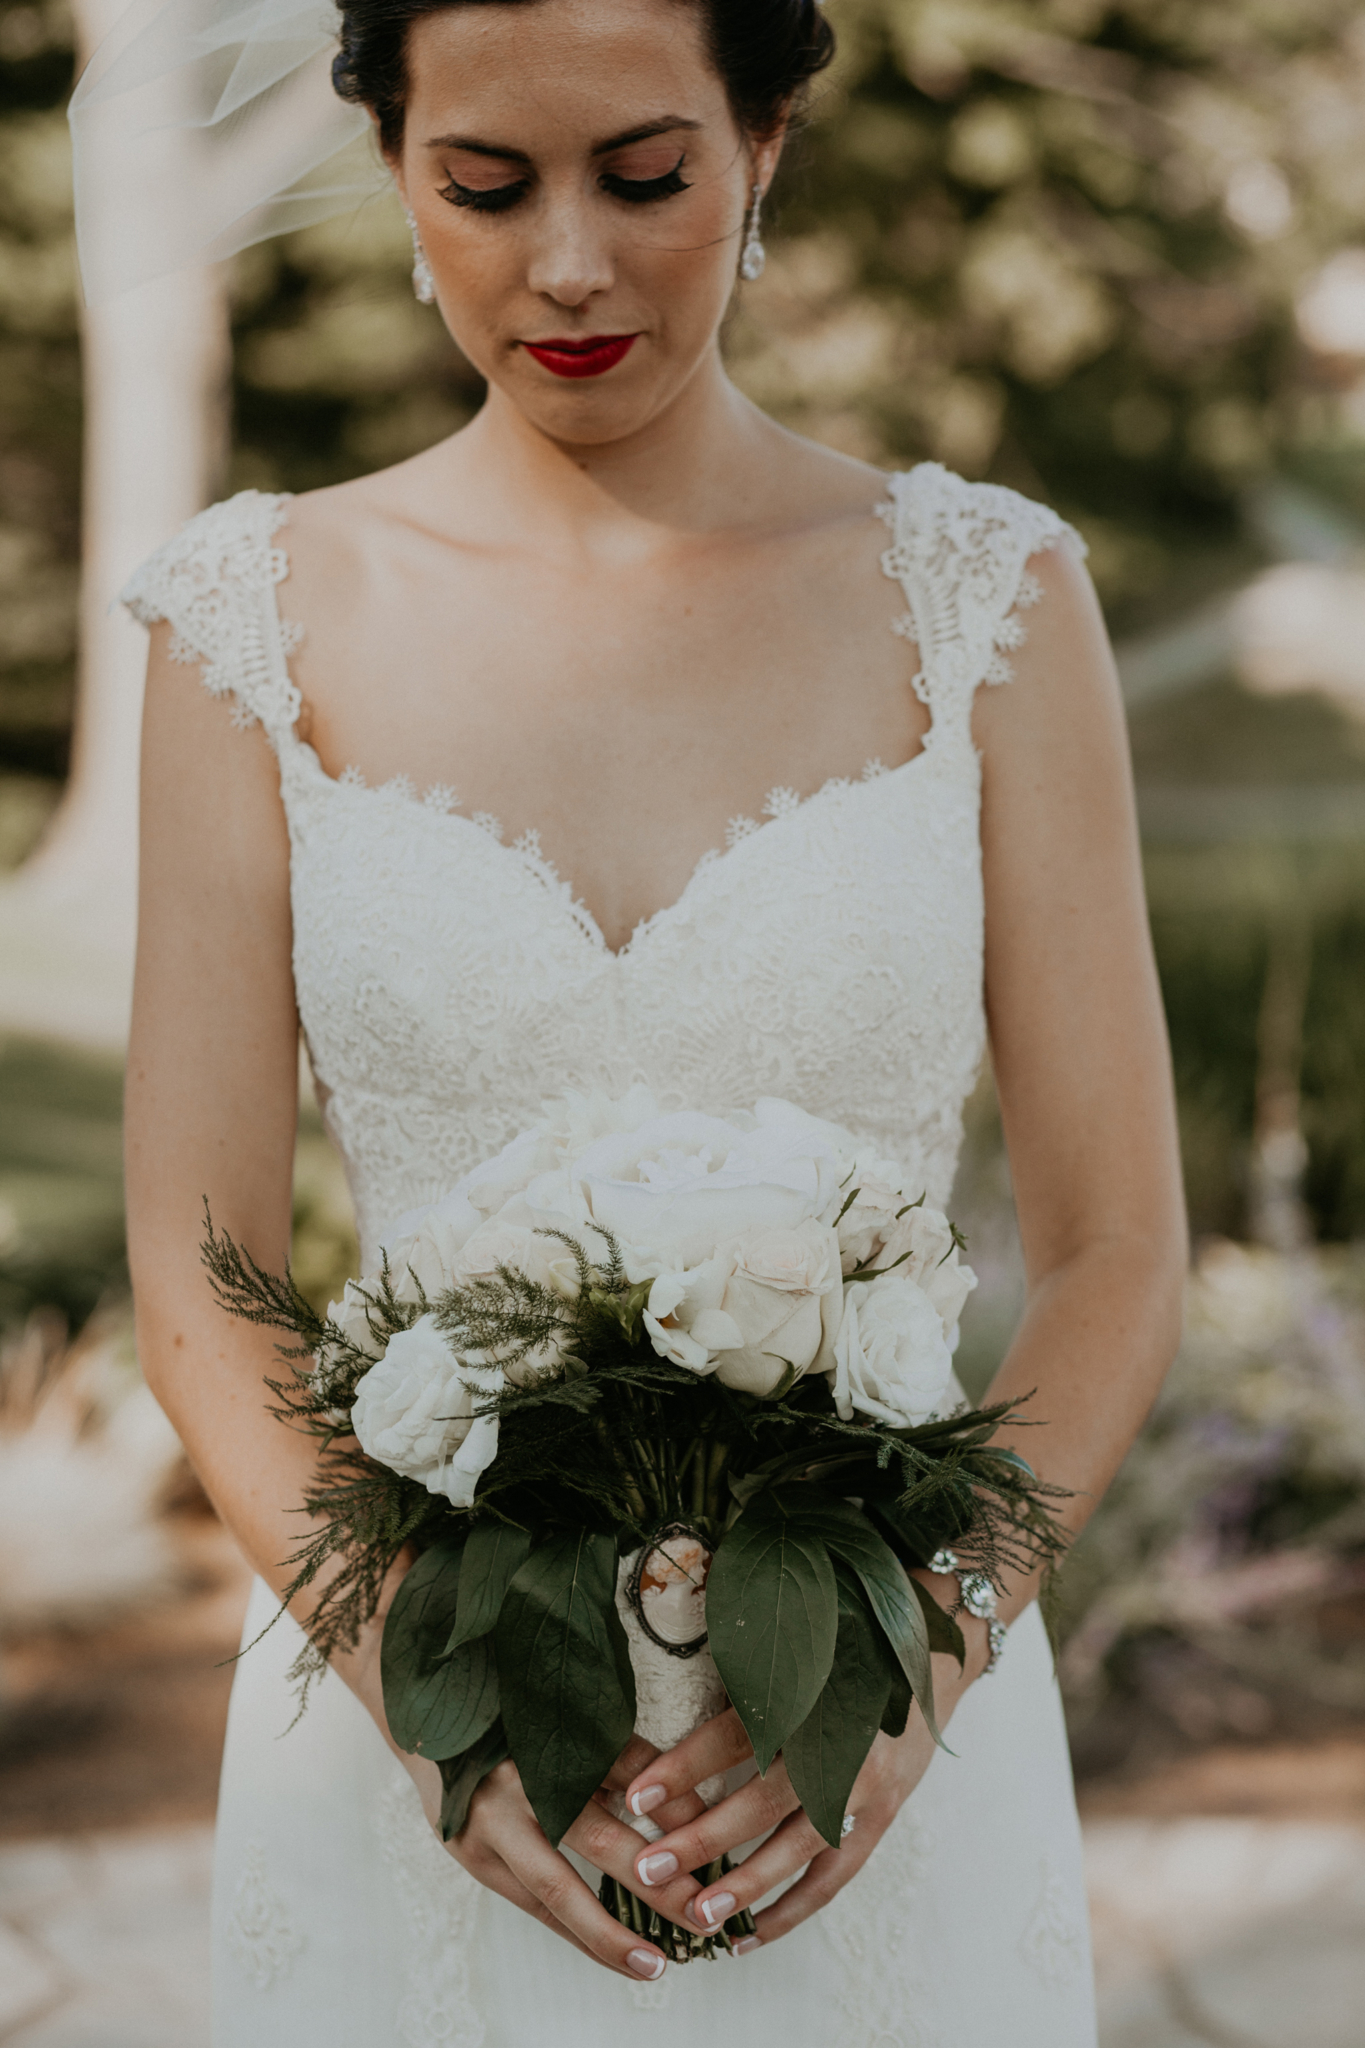 Close up portrait of bride holding bouquet